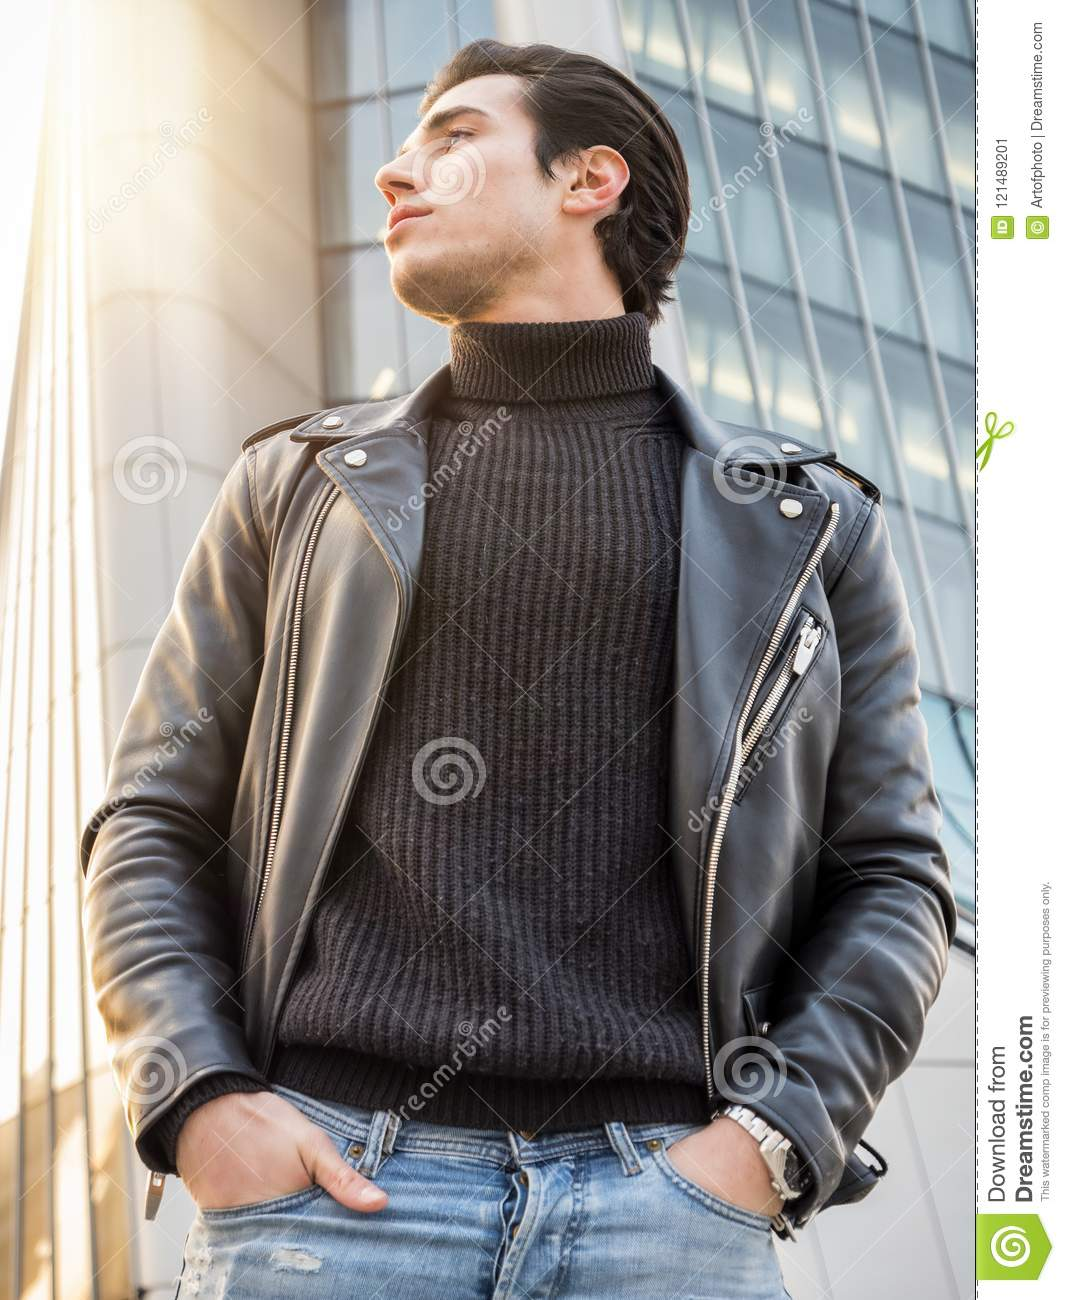 One handsome young man in modern city setting